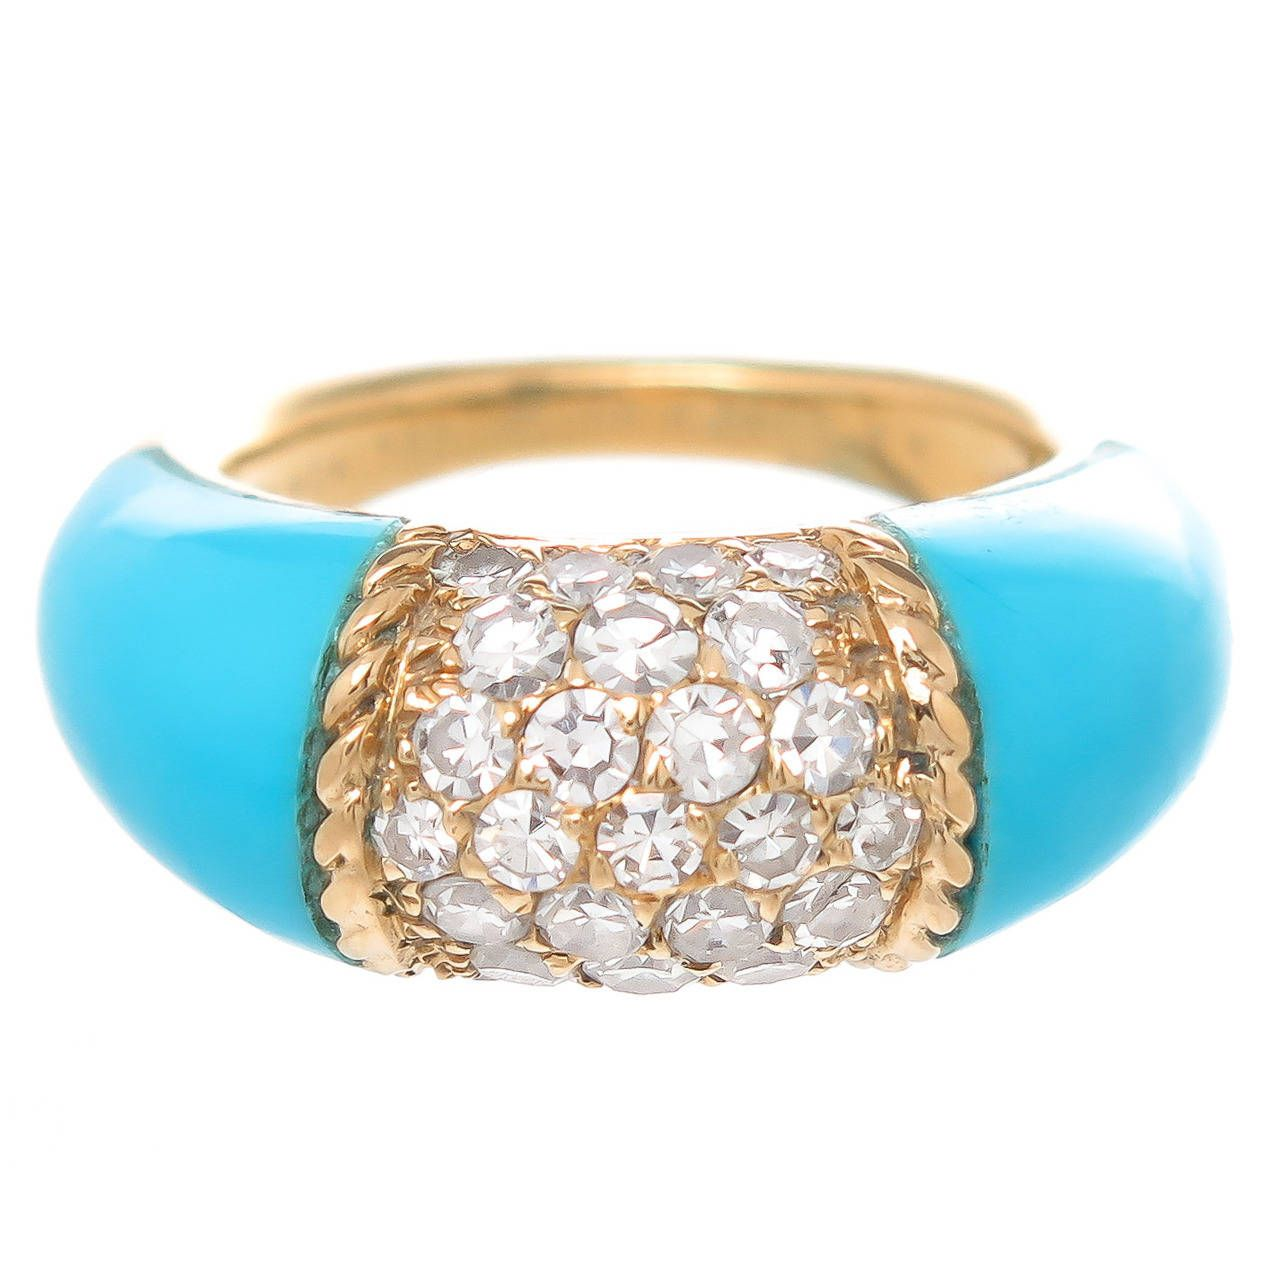 Van cleef u arpels turquoise diamond gold philippine ring